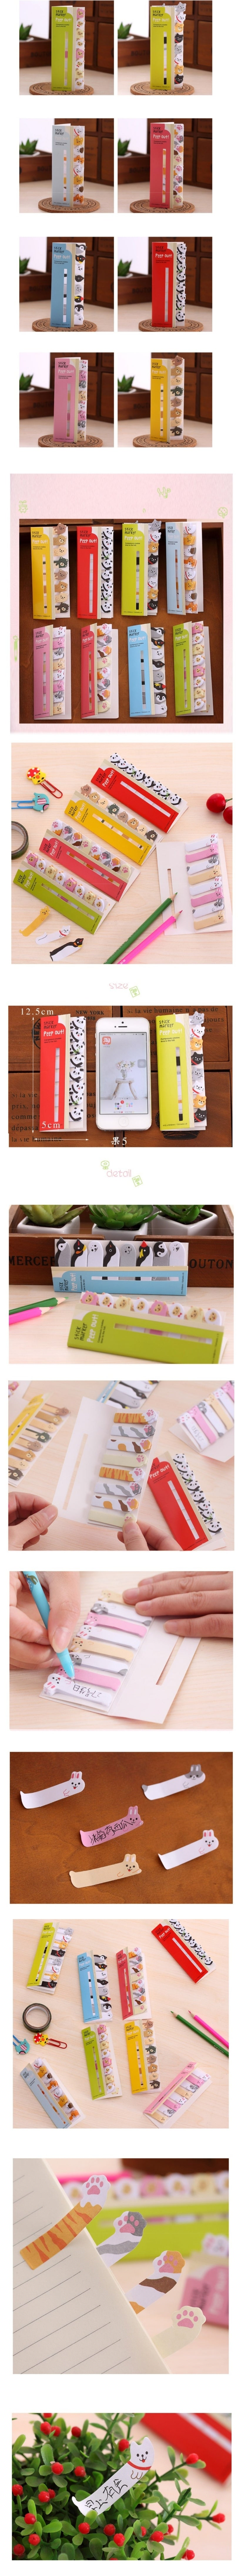 Kawaii Animal Sticky Note - Otrio Stationery